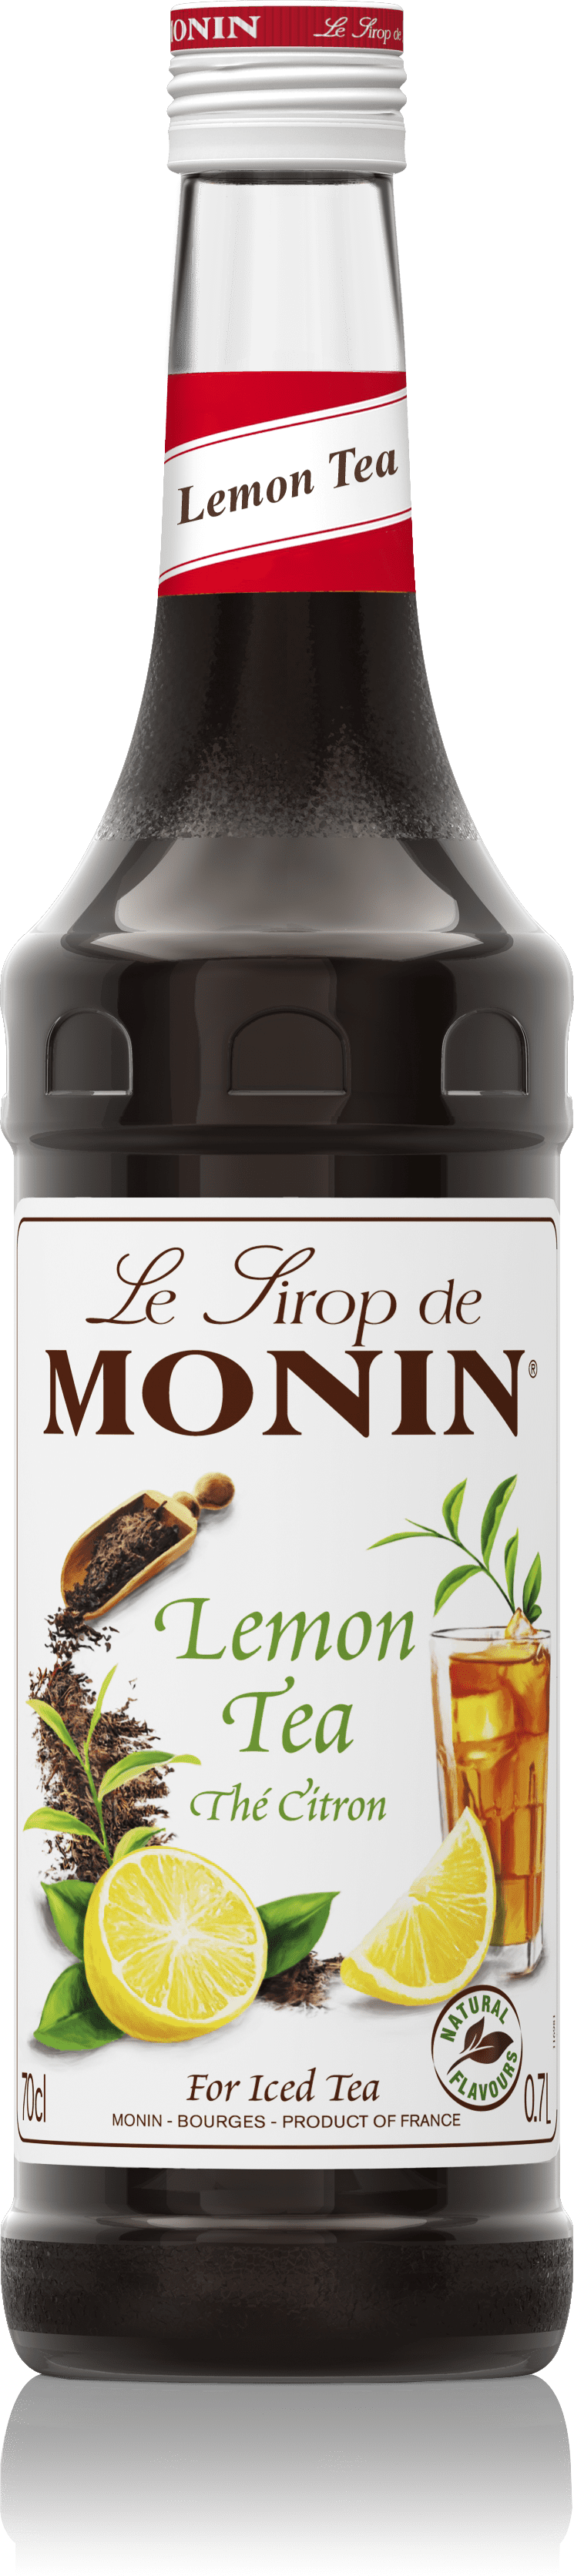 Xarope Monin Lemon Tea / Thé Citron 750ml.